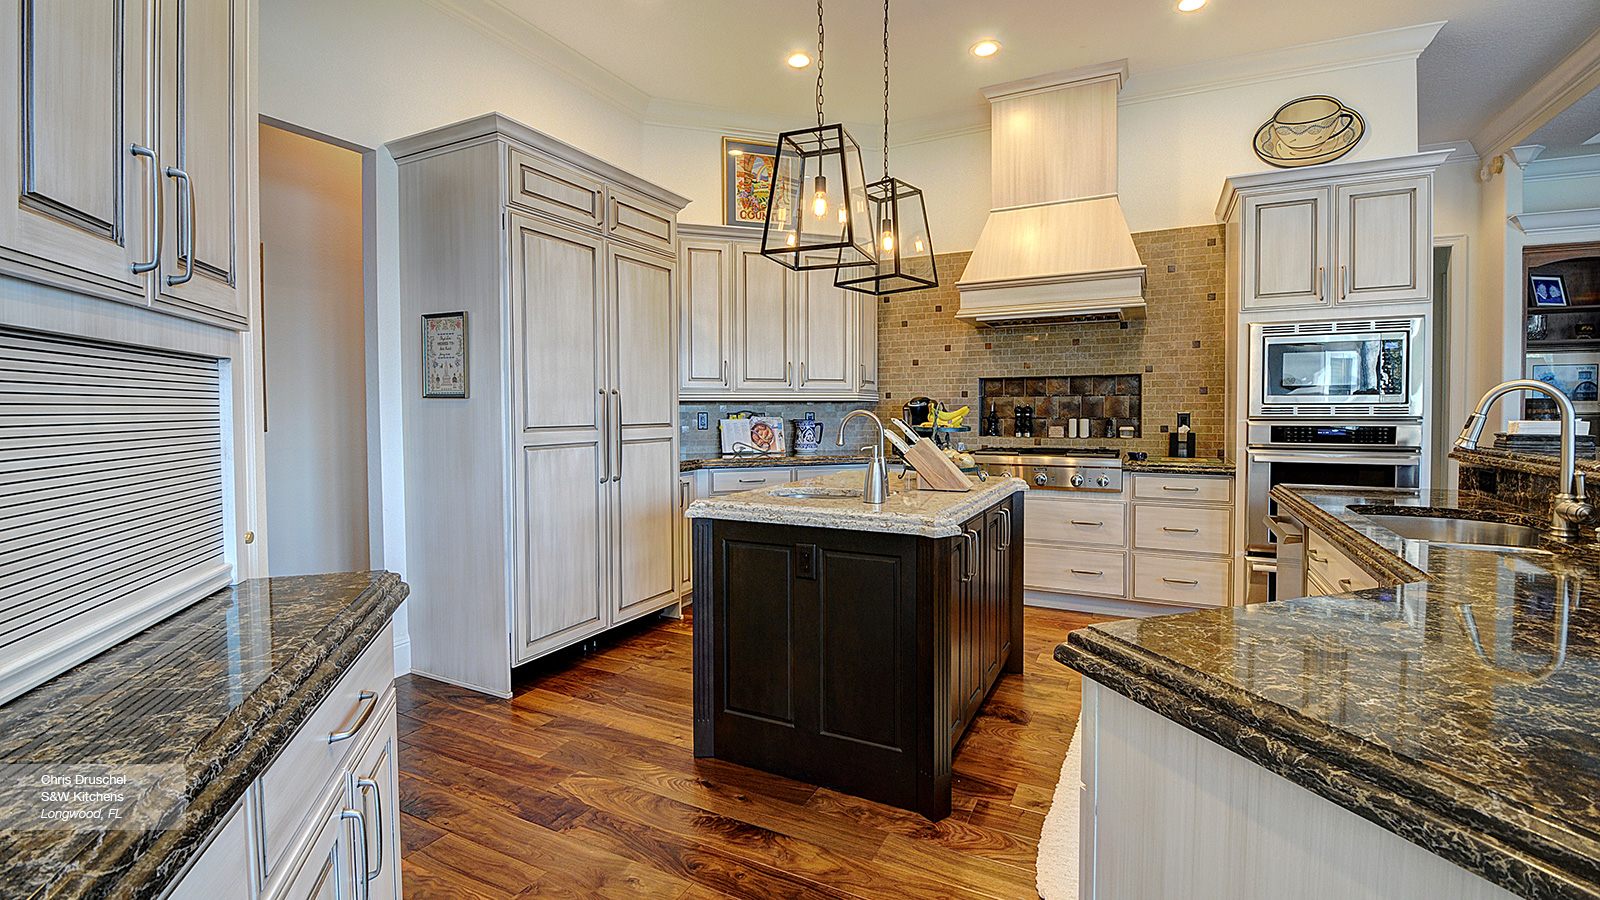 Off White Cabinets with a Dark Wood Kitchen Island - Omega